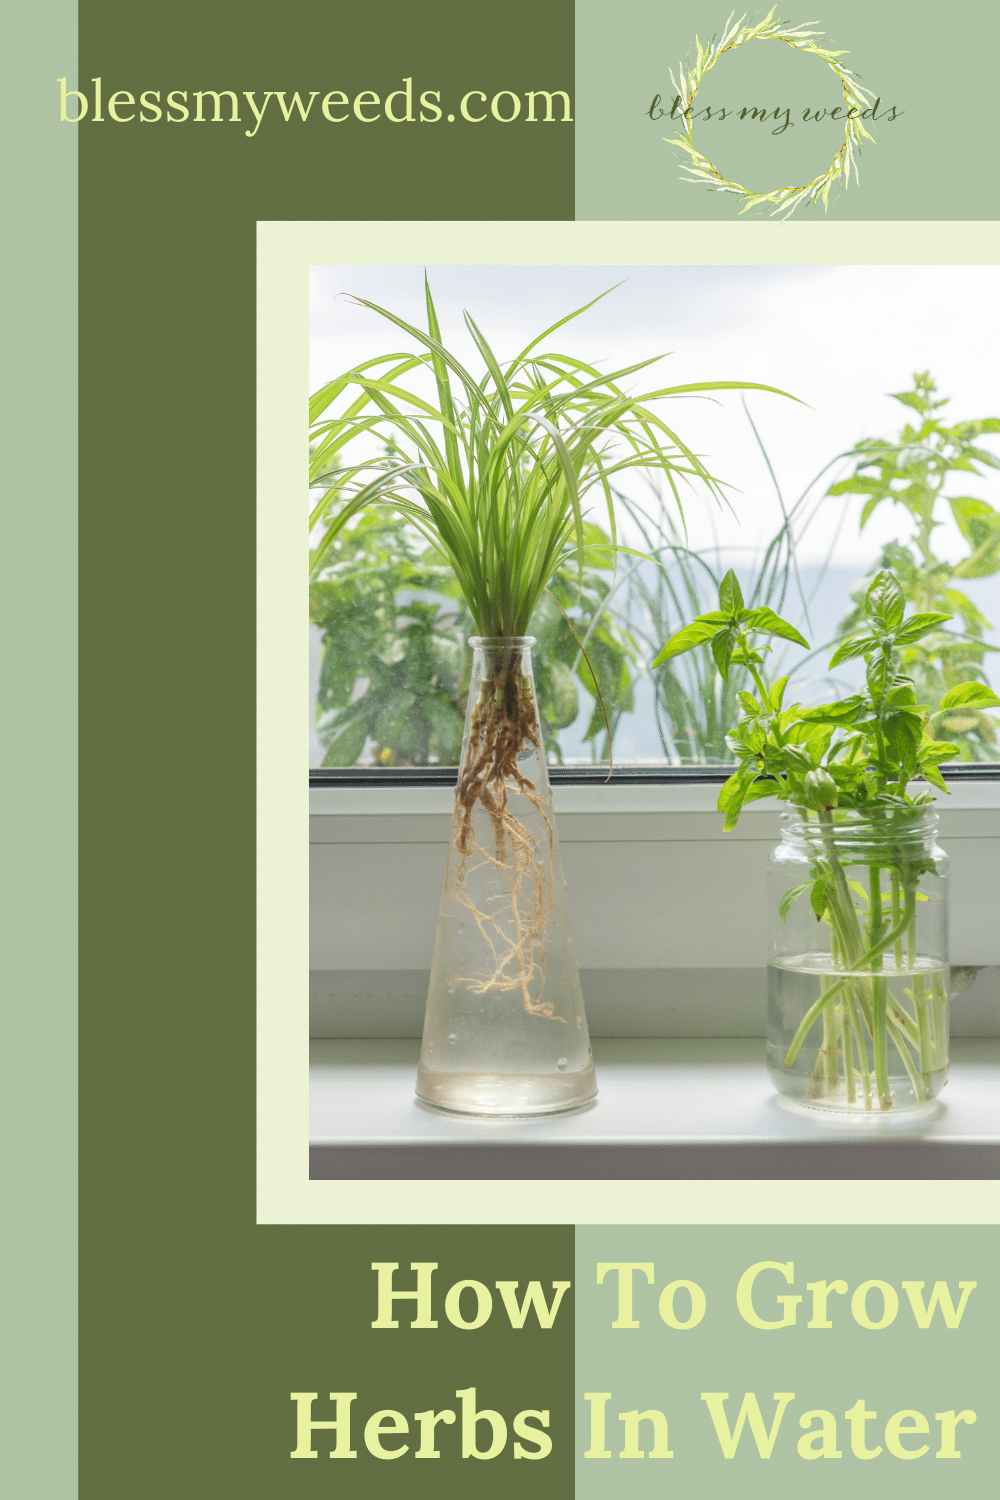 Blessmyweeds.com makes growing plants easy for people of all abilities! If you're just getting into growing your own herbs, find out how you can do it in water (without any soil at all)!